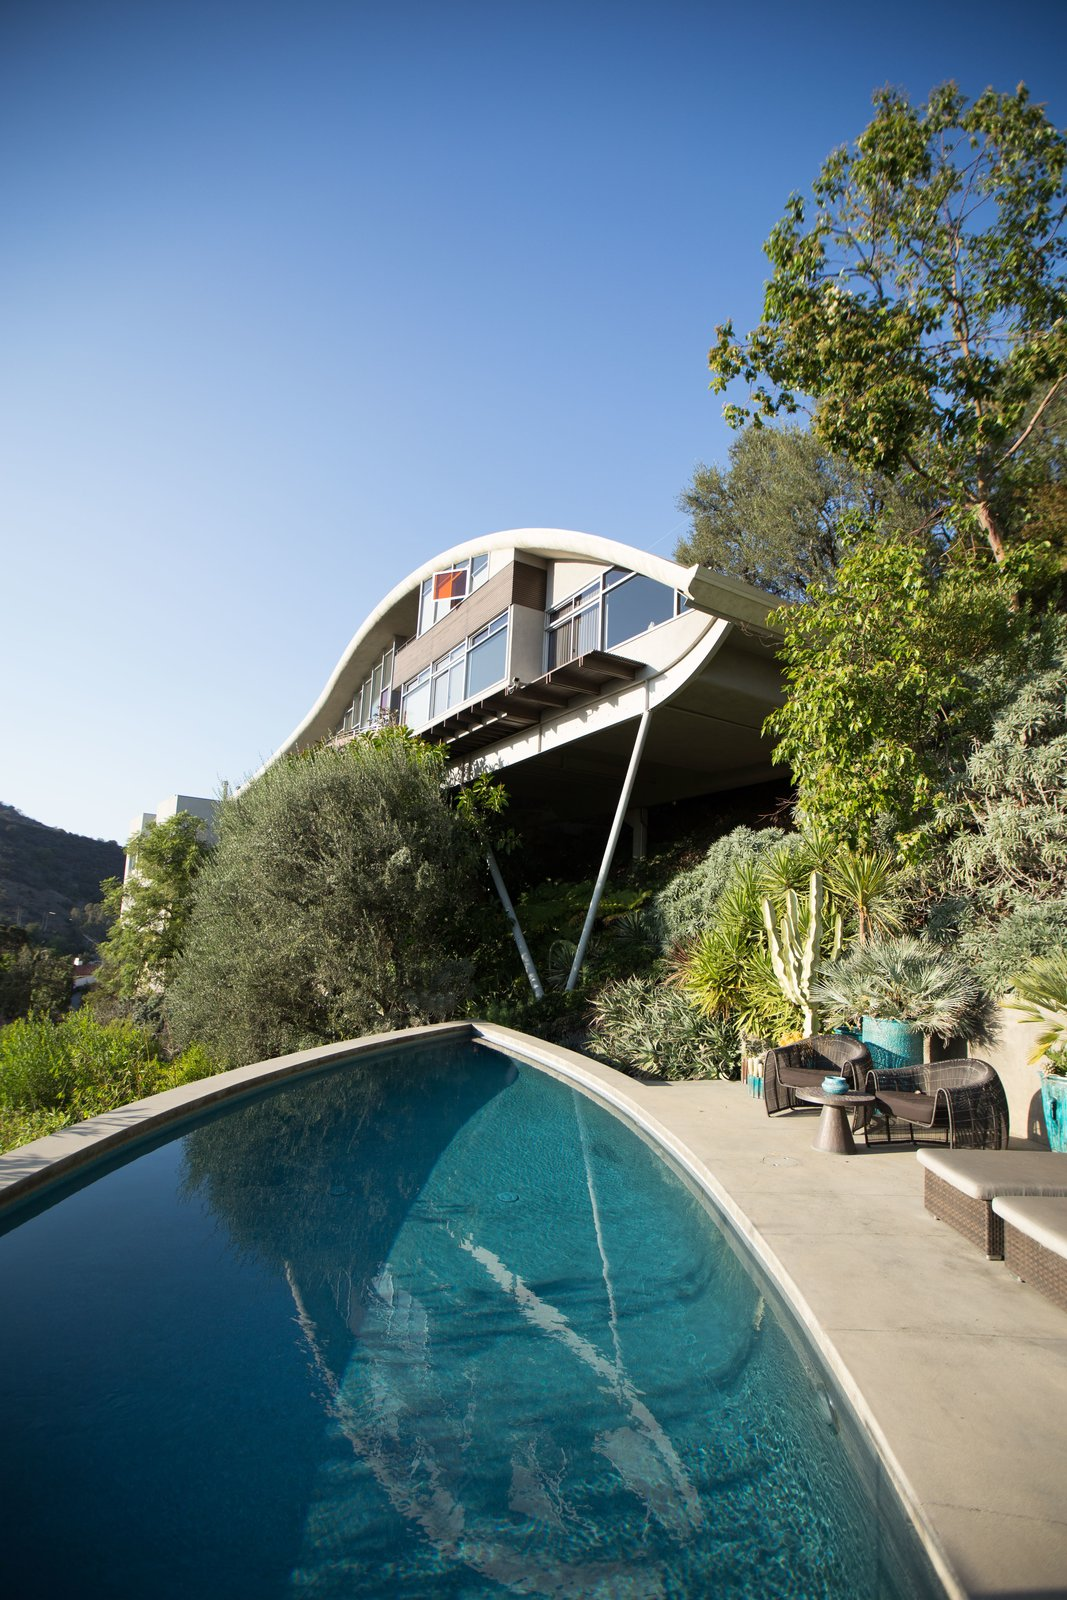 Tackling Big Design Questions in an Iconic Home - Photo 1 of 10